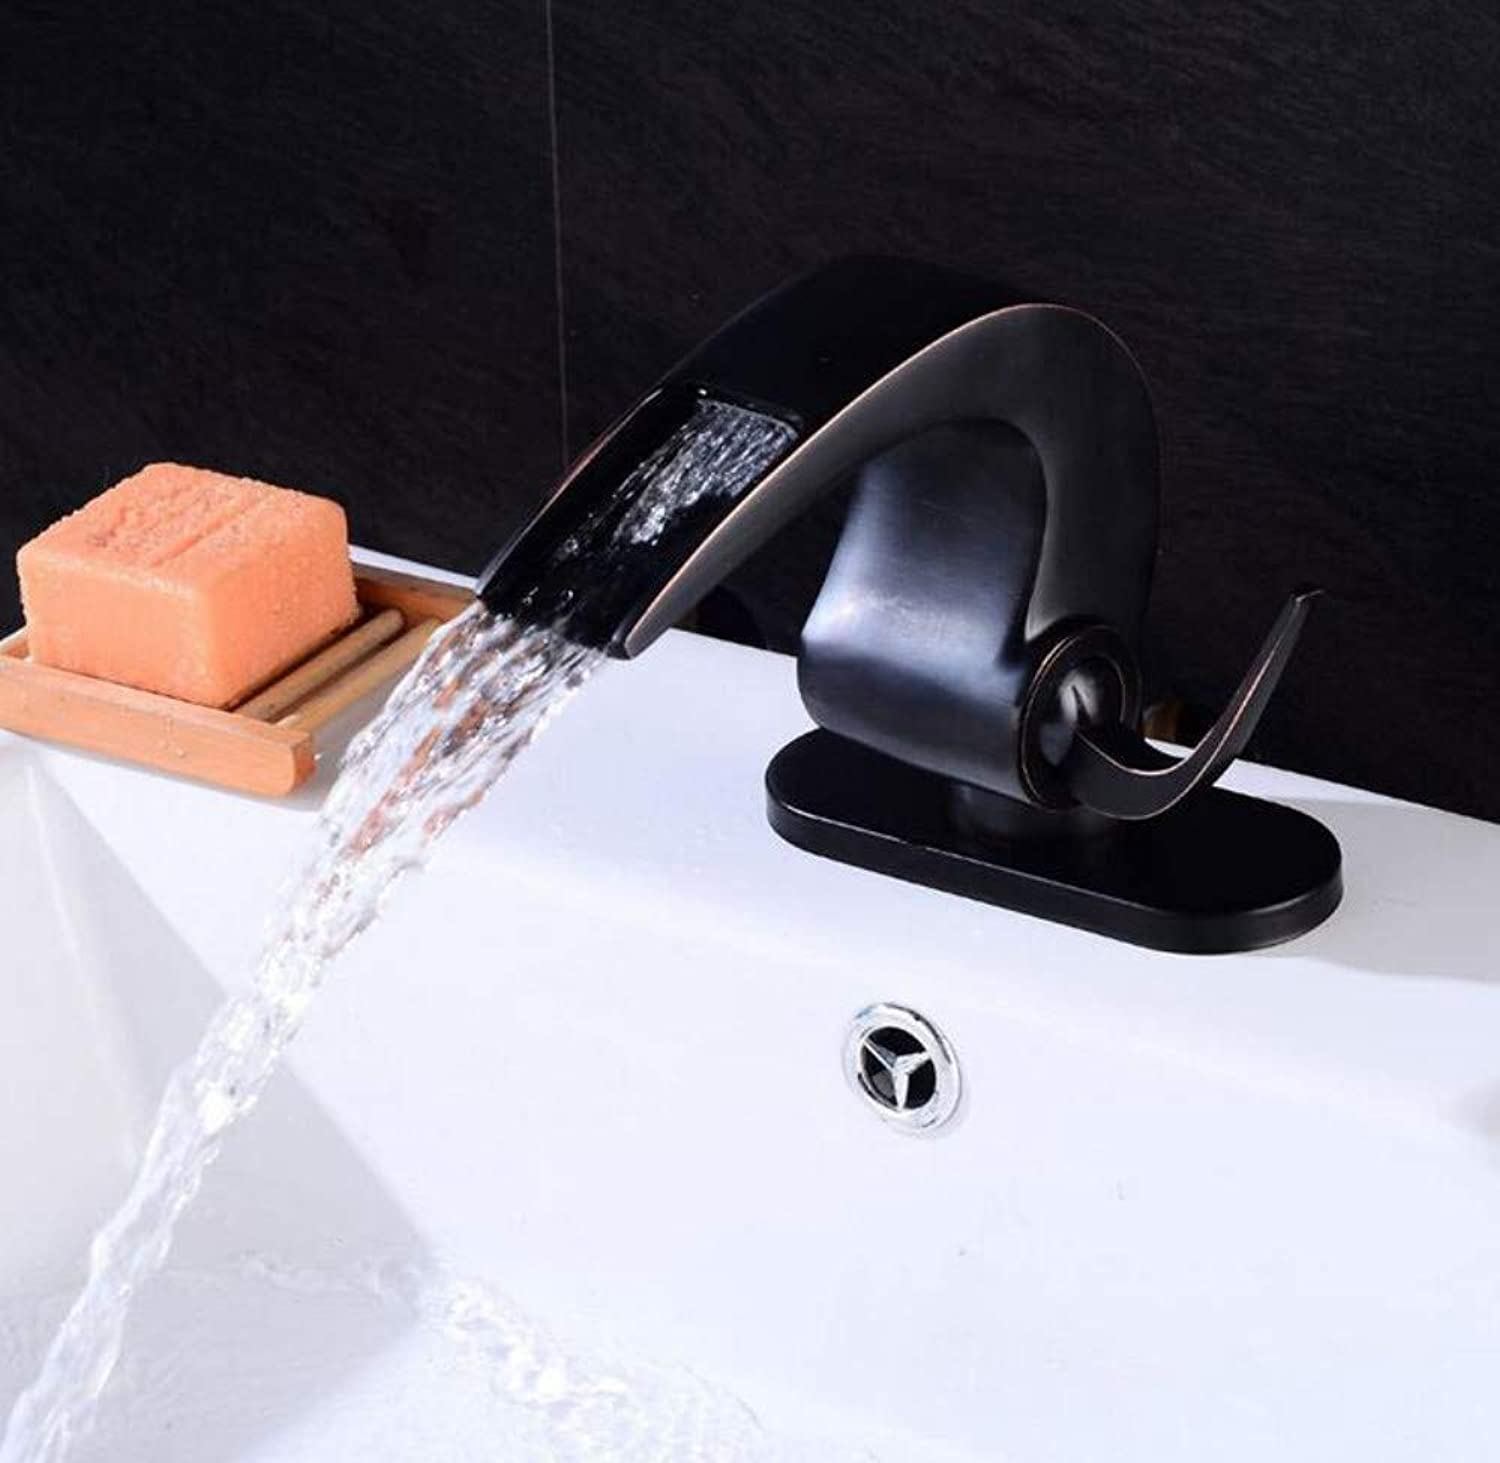 Mixer Basin Taps Faucet Retro Black and Cold Water Single Hole Cloakroom Kitchen Lavatory Sink Mixer Tap